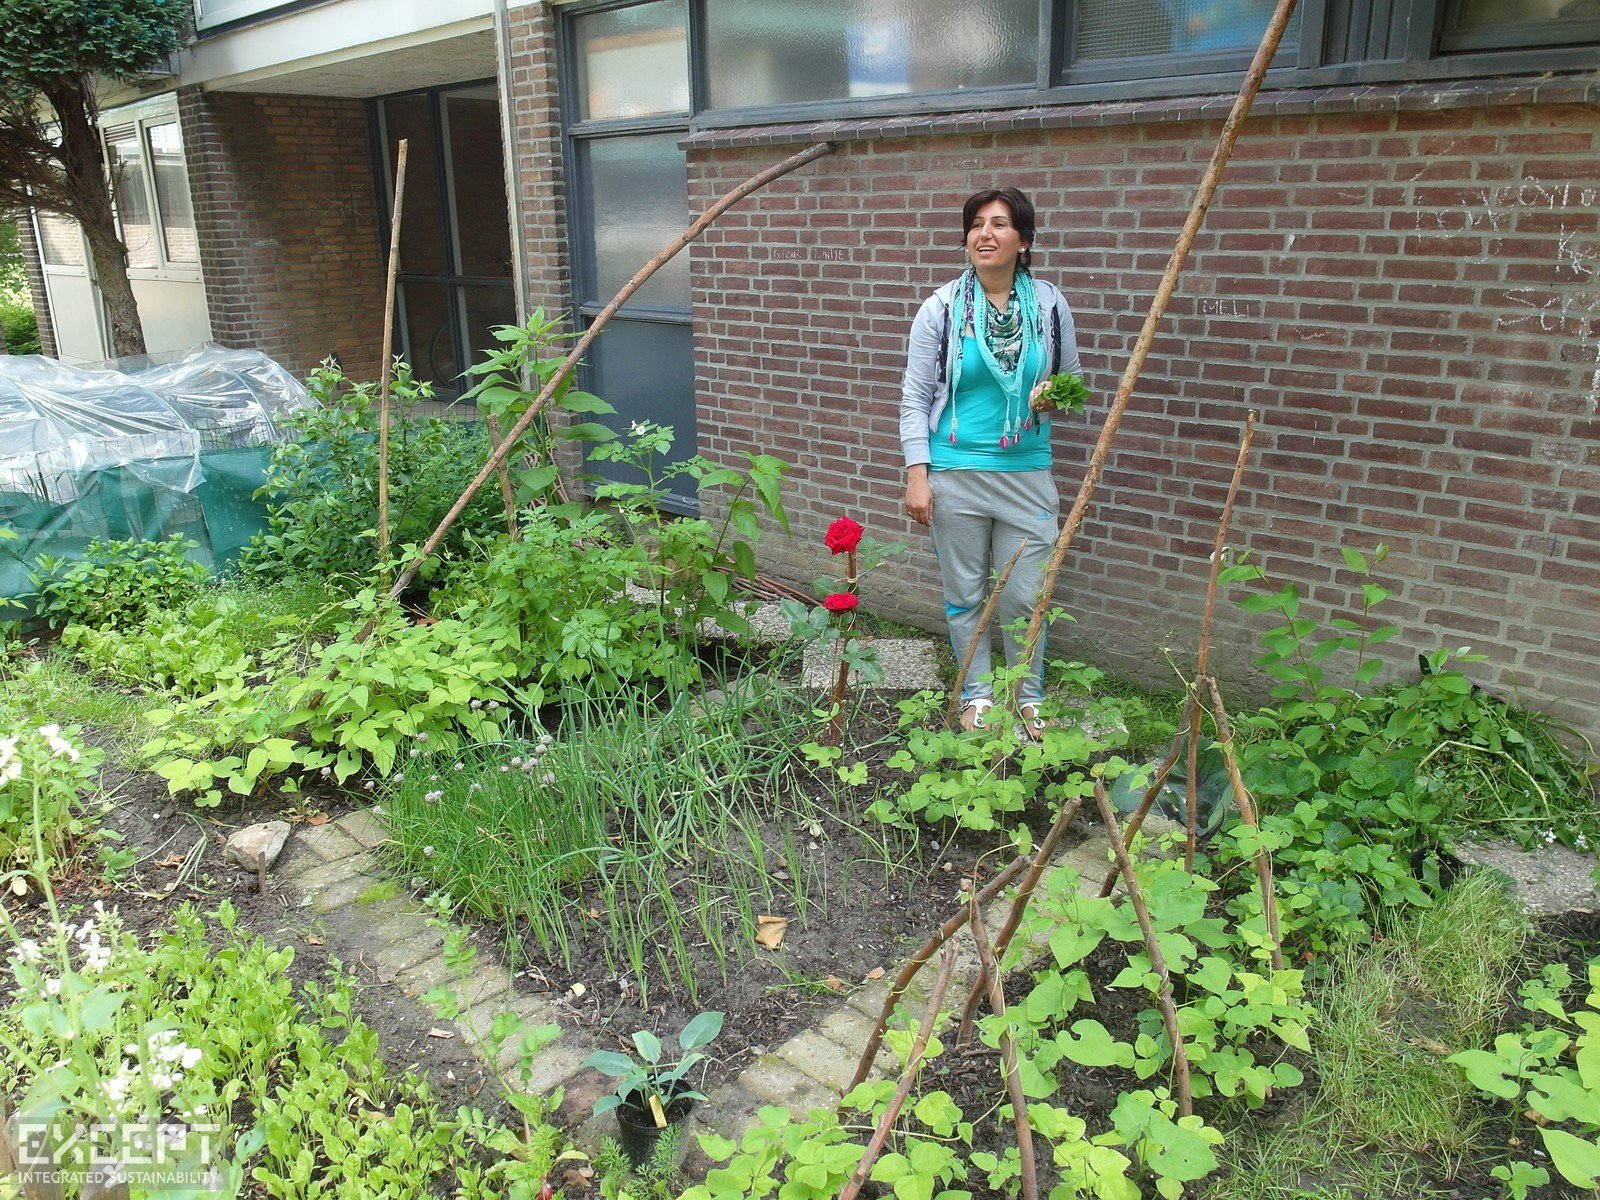 Urban Gardens in Schiebroek-Zuid - Gul's urban garden provides her family with fresh vegetables, with excess to spare.